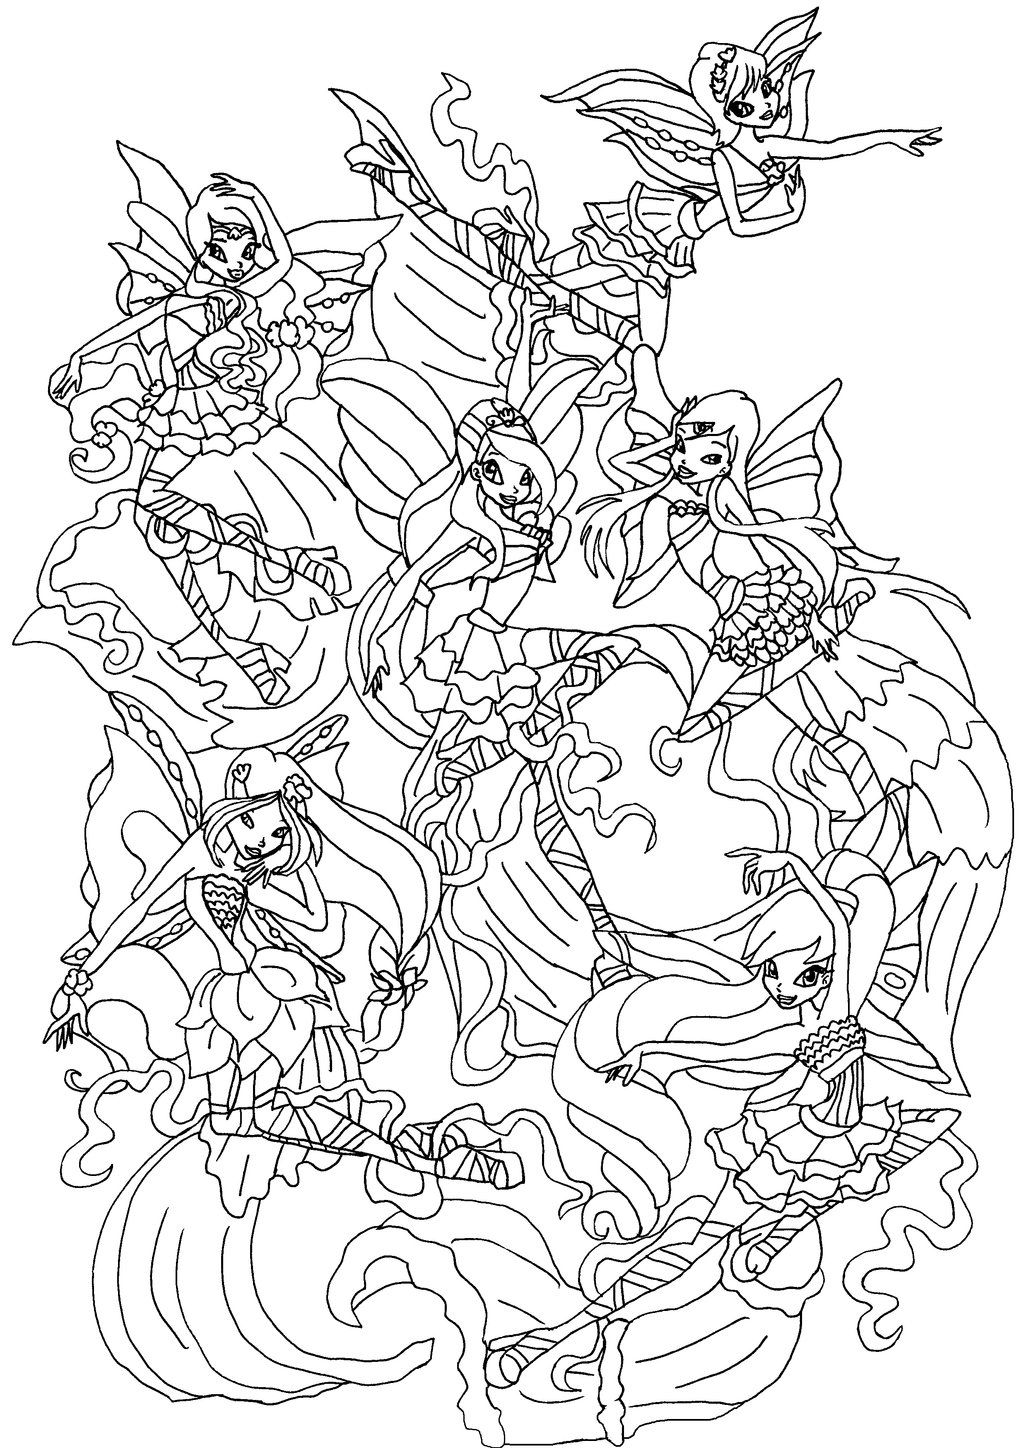 Winx Club Bloom Harmonix Coloring Pages | Winx | Pinterest | Malerei